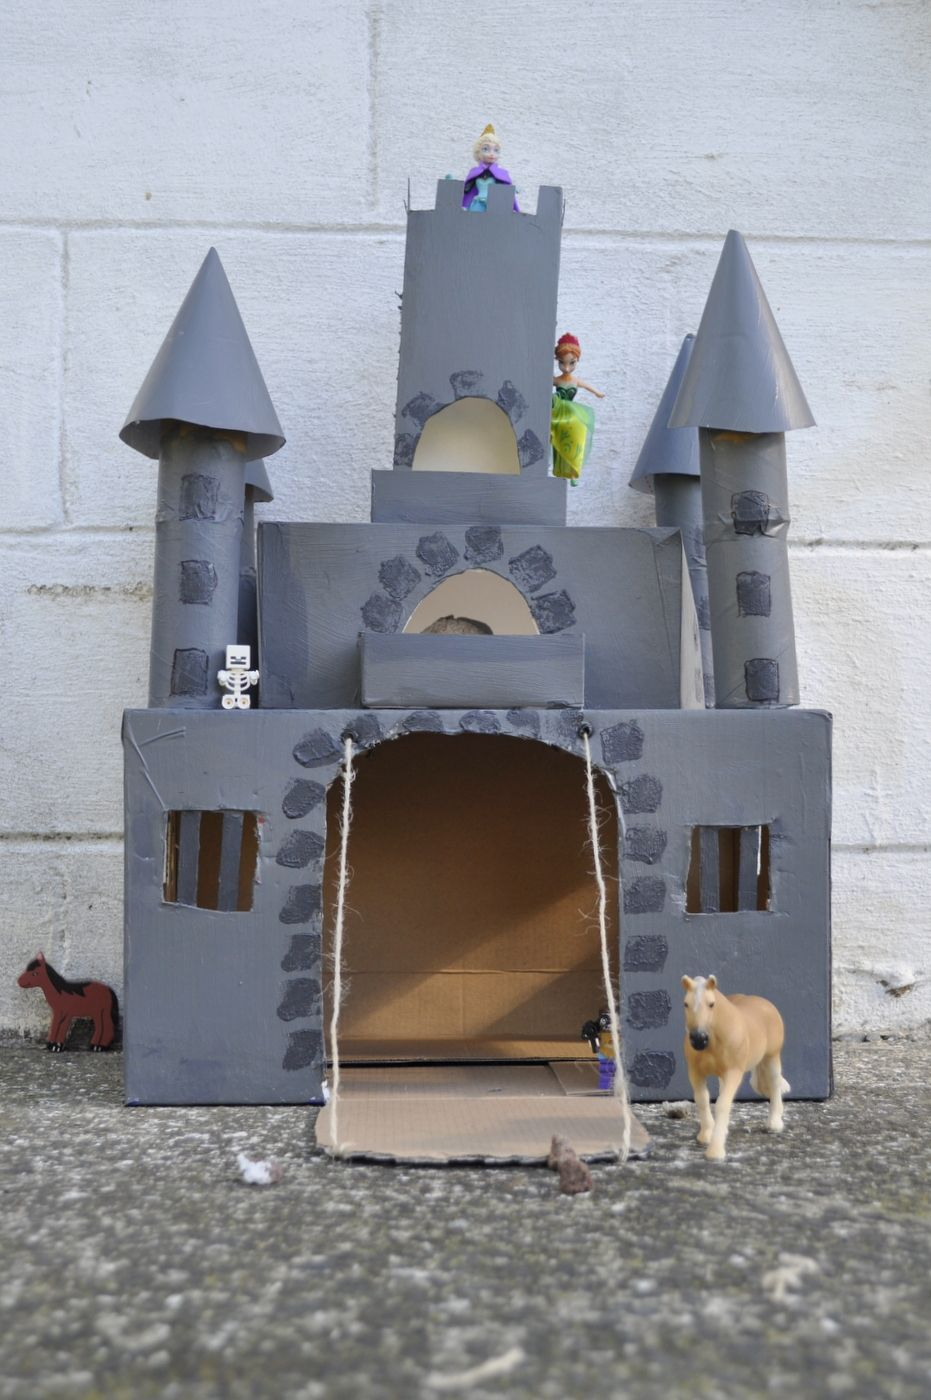 Discussion on this topic: How to Make a Model Castle, how-to-make-a-model-castle/